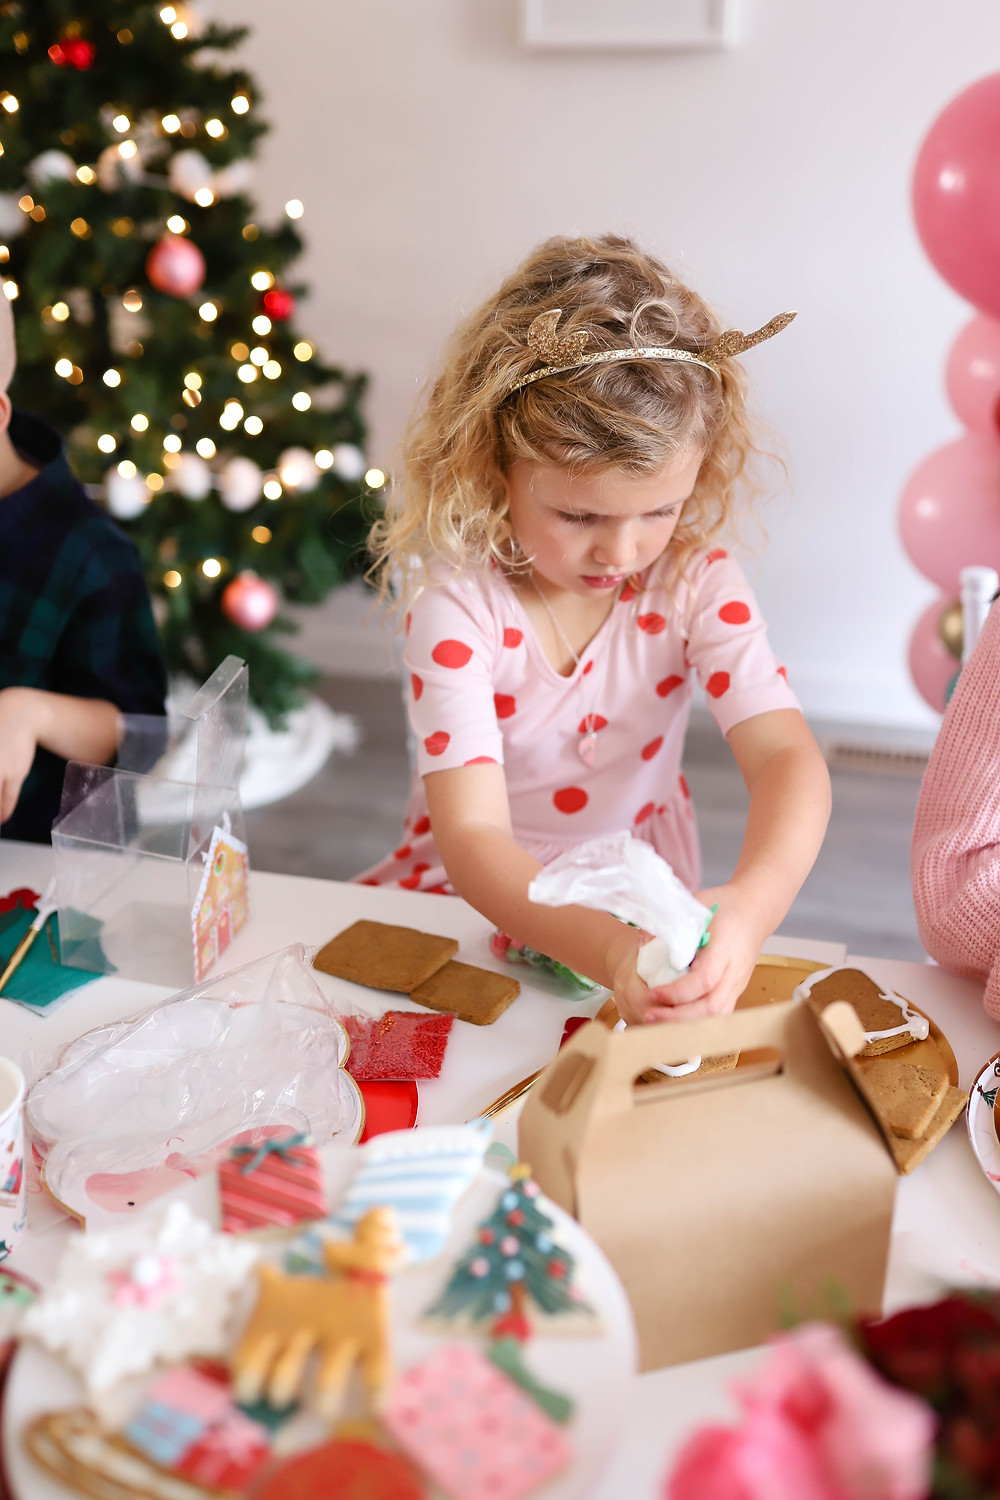 A little girl decorating a gingerbread house at a holiday Christmas party in front of a christmas tree.